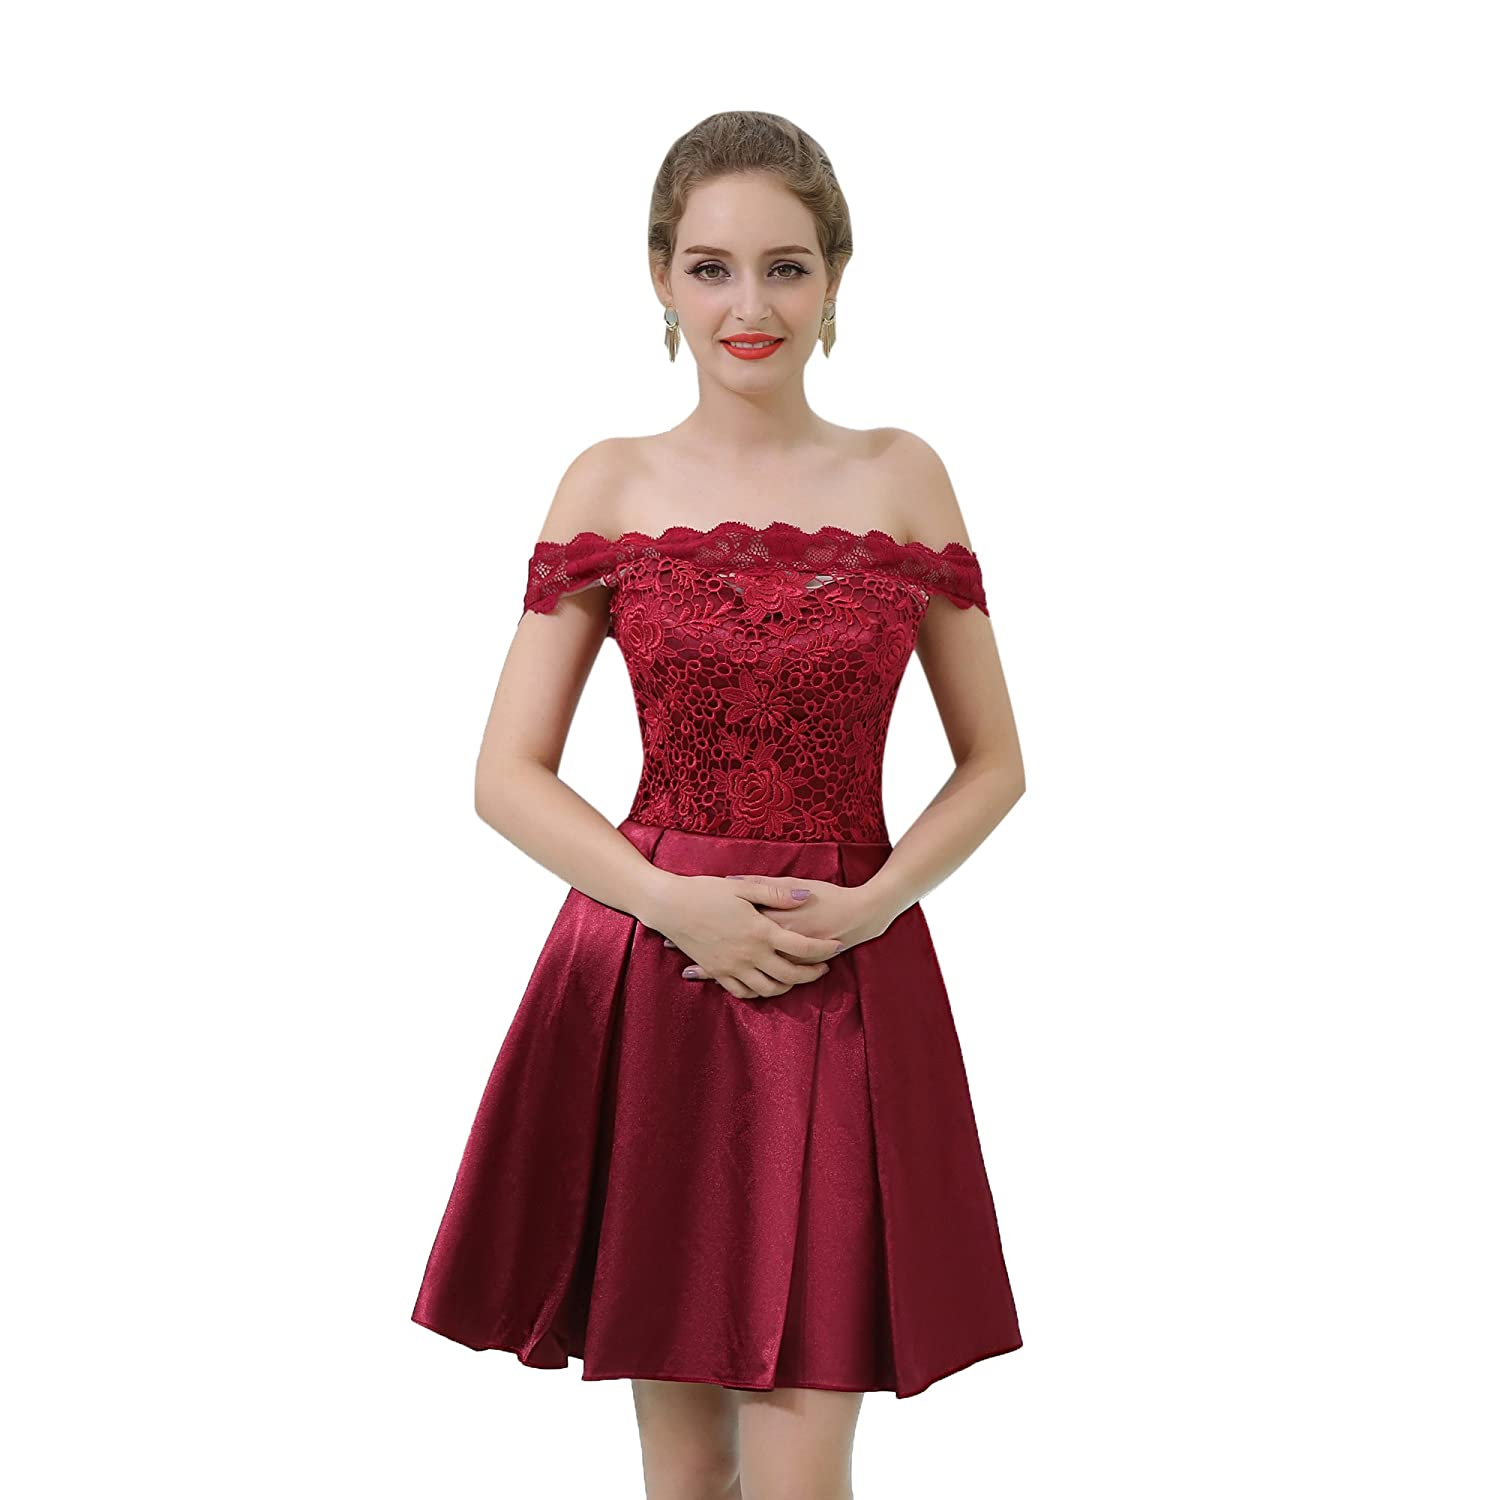 0e45abfd6ab6 JoyVany Women s Off Shoulder Floral Lace Prom Dress Short Cocktail Party  Dress at Amazon Women s Clothing store